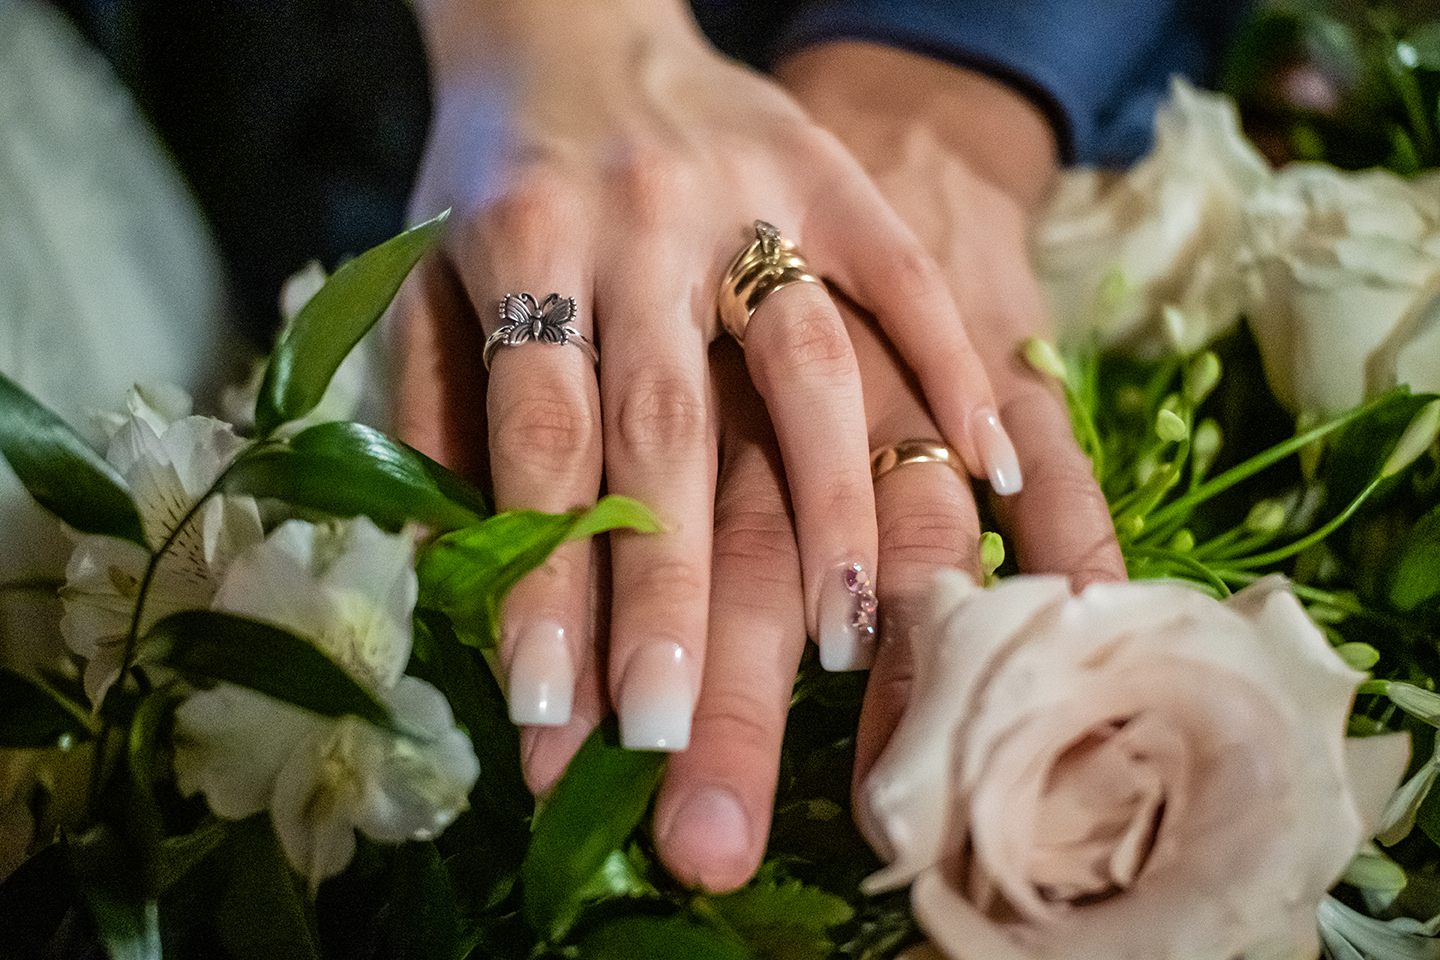 With their hands resting on pink and white flowers the bride and grooms hands touch for a close up detailed shot of their wedding bands at The Grand Hacienda at Skipper Ranch located in Encino, Texas.